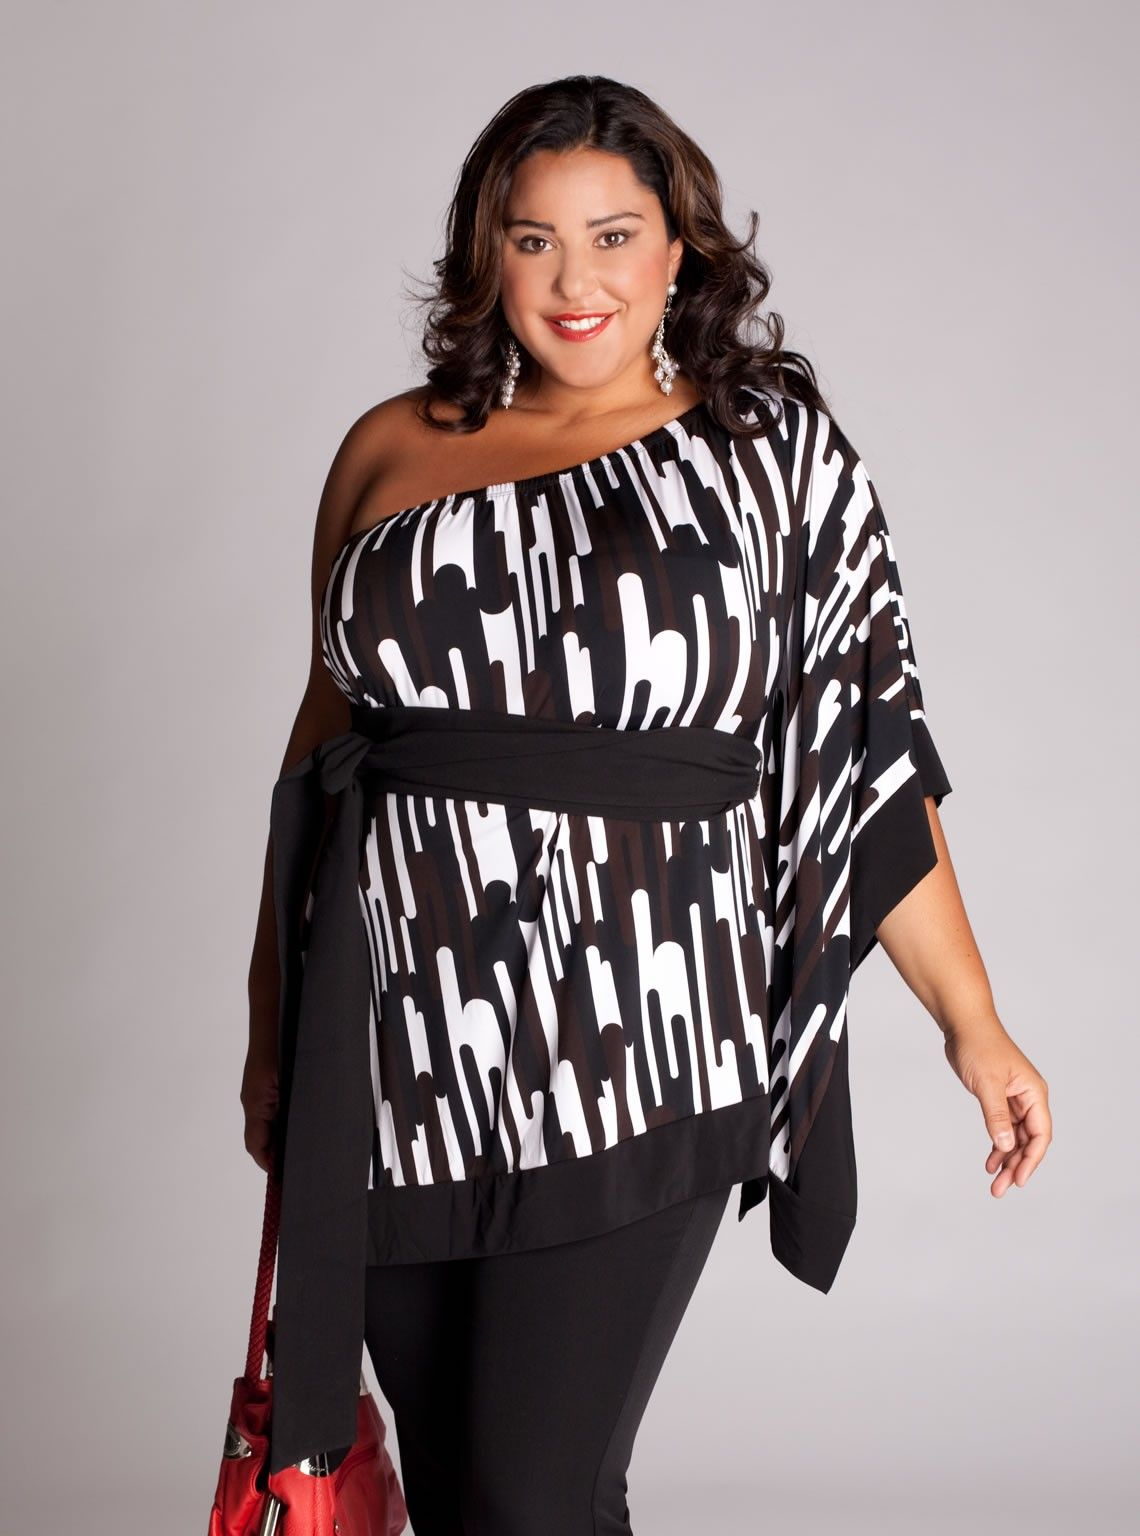 plus size trendy clothing clothes | clothing for trendy women diva